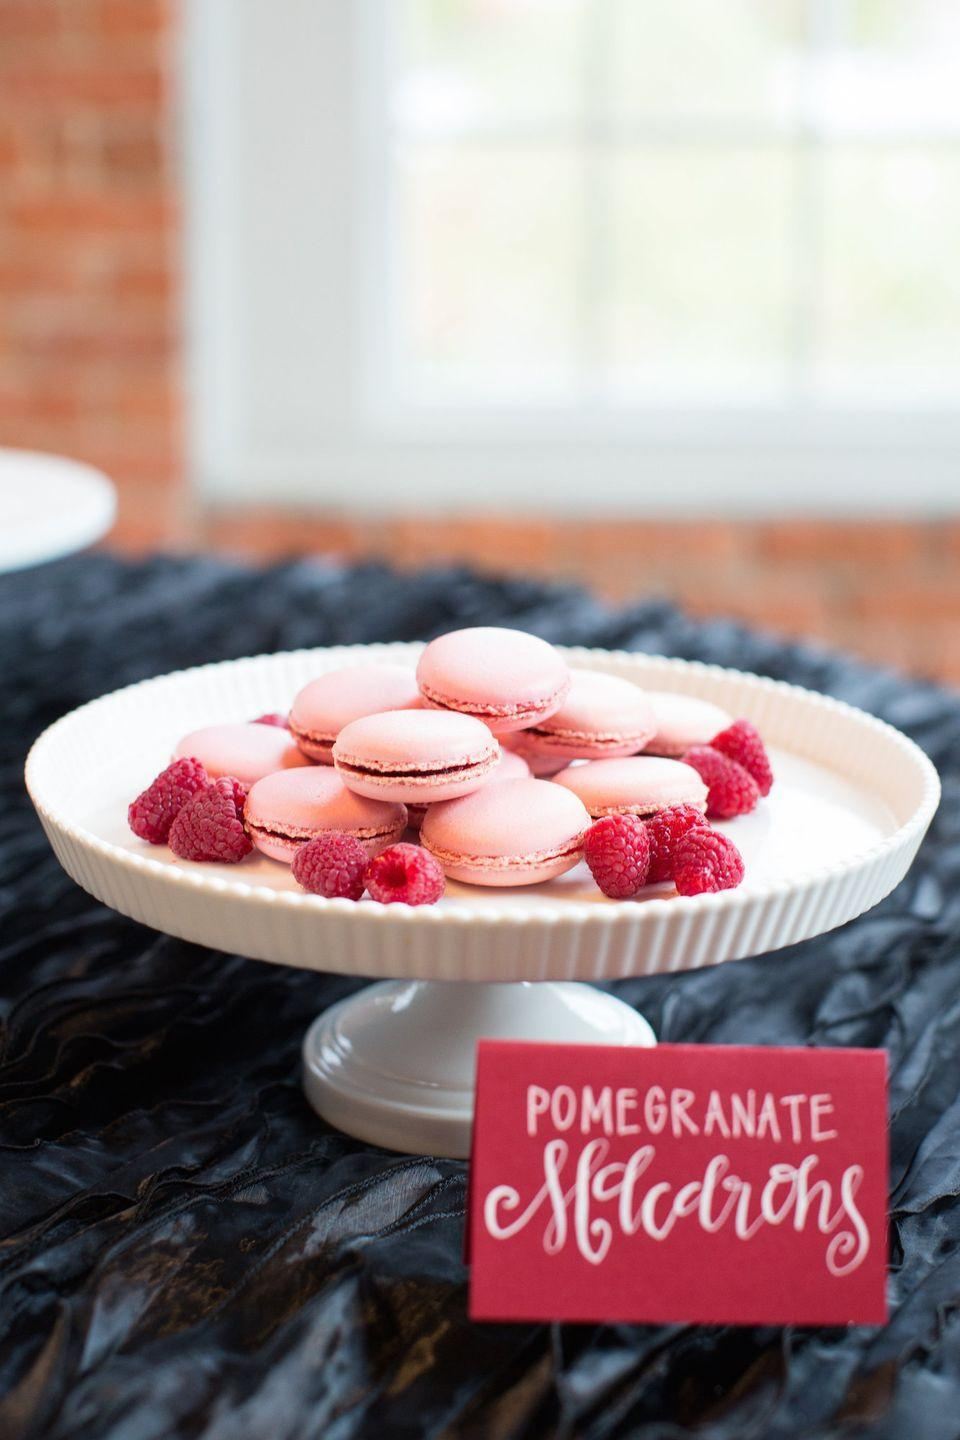 "<p>One of the loveliest aspects of Valentine's Day (besides celebrating the love in your life, of course) is that the holiday's colors make it easy for food to double as themed decor. Here, raspberries sprinkled around pink pomegranate macarons make for a treat that's appealing to the eyes and the tastebuds. </p><p><em>Via <a href=""http://sugareuphoria.com/"" rel=""nofollow noopener"" target=""_blank"" data-ylk=""slk:Sugar Euphoria"" class=""link rapid-noclick-resp"">Sugar Euphoria</a></em></p><p><a class=""link rapid-noclick-resp"" href=""https://www.danasbakery.com/products/its-a-girl-1?variant=34420522122¤cy=USD&gclid=CjwKCAiA9vOABhBfEiwATCi7GJxeu2izOe5qzdPxddJNIejnVAglD2gP8jaHCstUJYfMNW6Su3_BpRoC8ZcQAvD_BwE"" rel=""nofollow noopener"" target=""_blank"" data-ylk=""slk:GET THE LOOK"">GET THE LOOK</a><br><em>Chocolate-Covered Strawberry Box, Dana's Bakery, $36</em><br></p>"